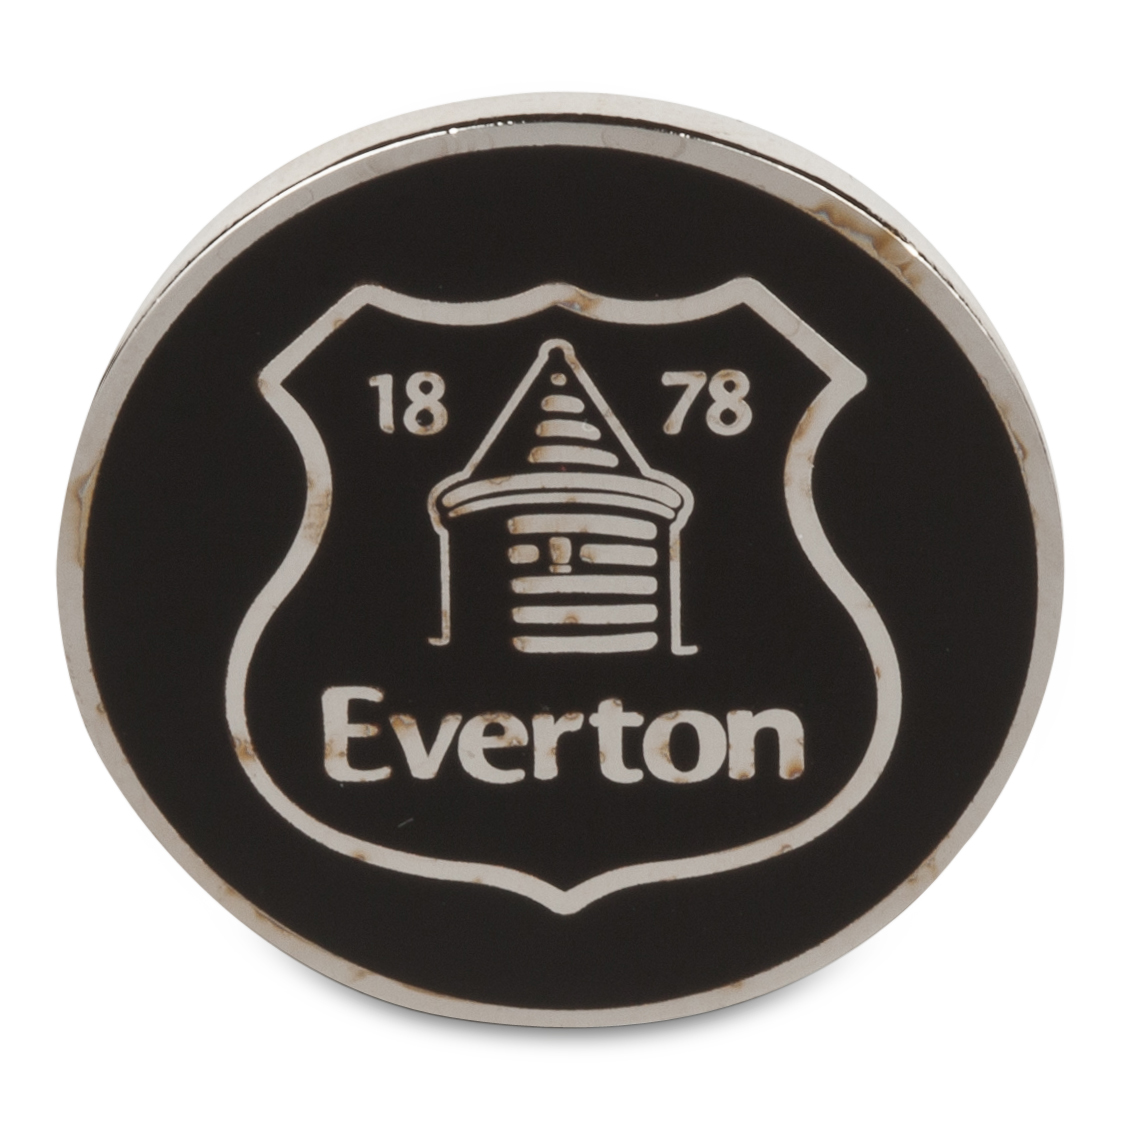 Everton Executive Golf Ball Marker